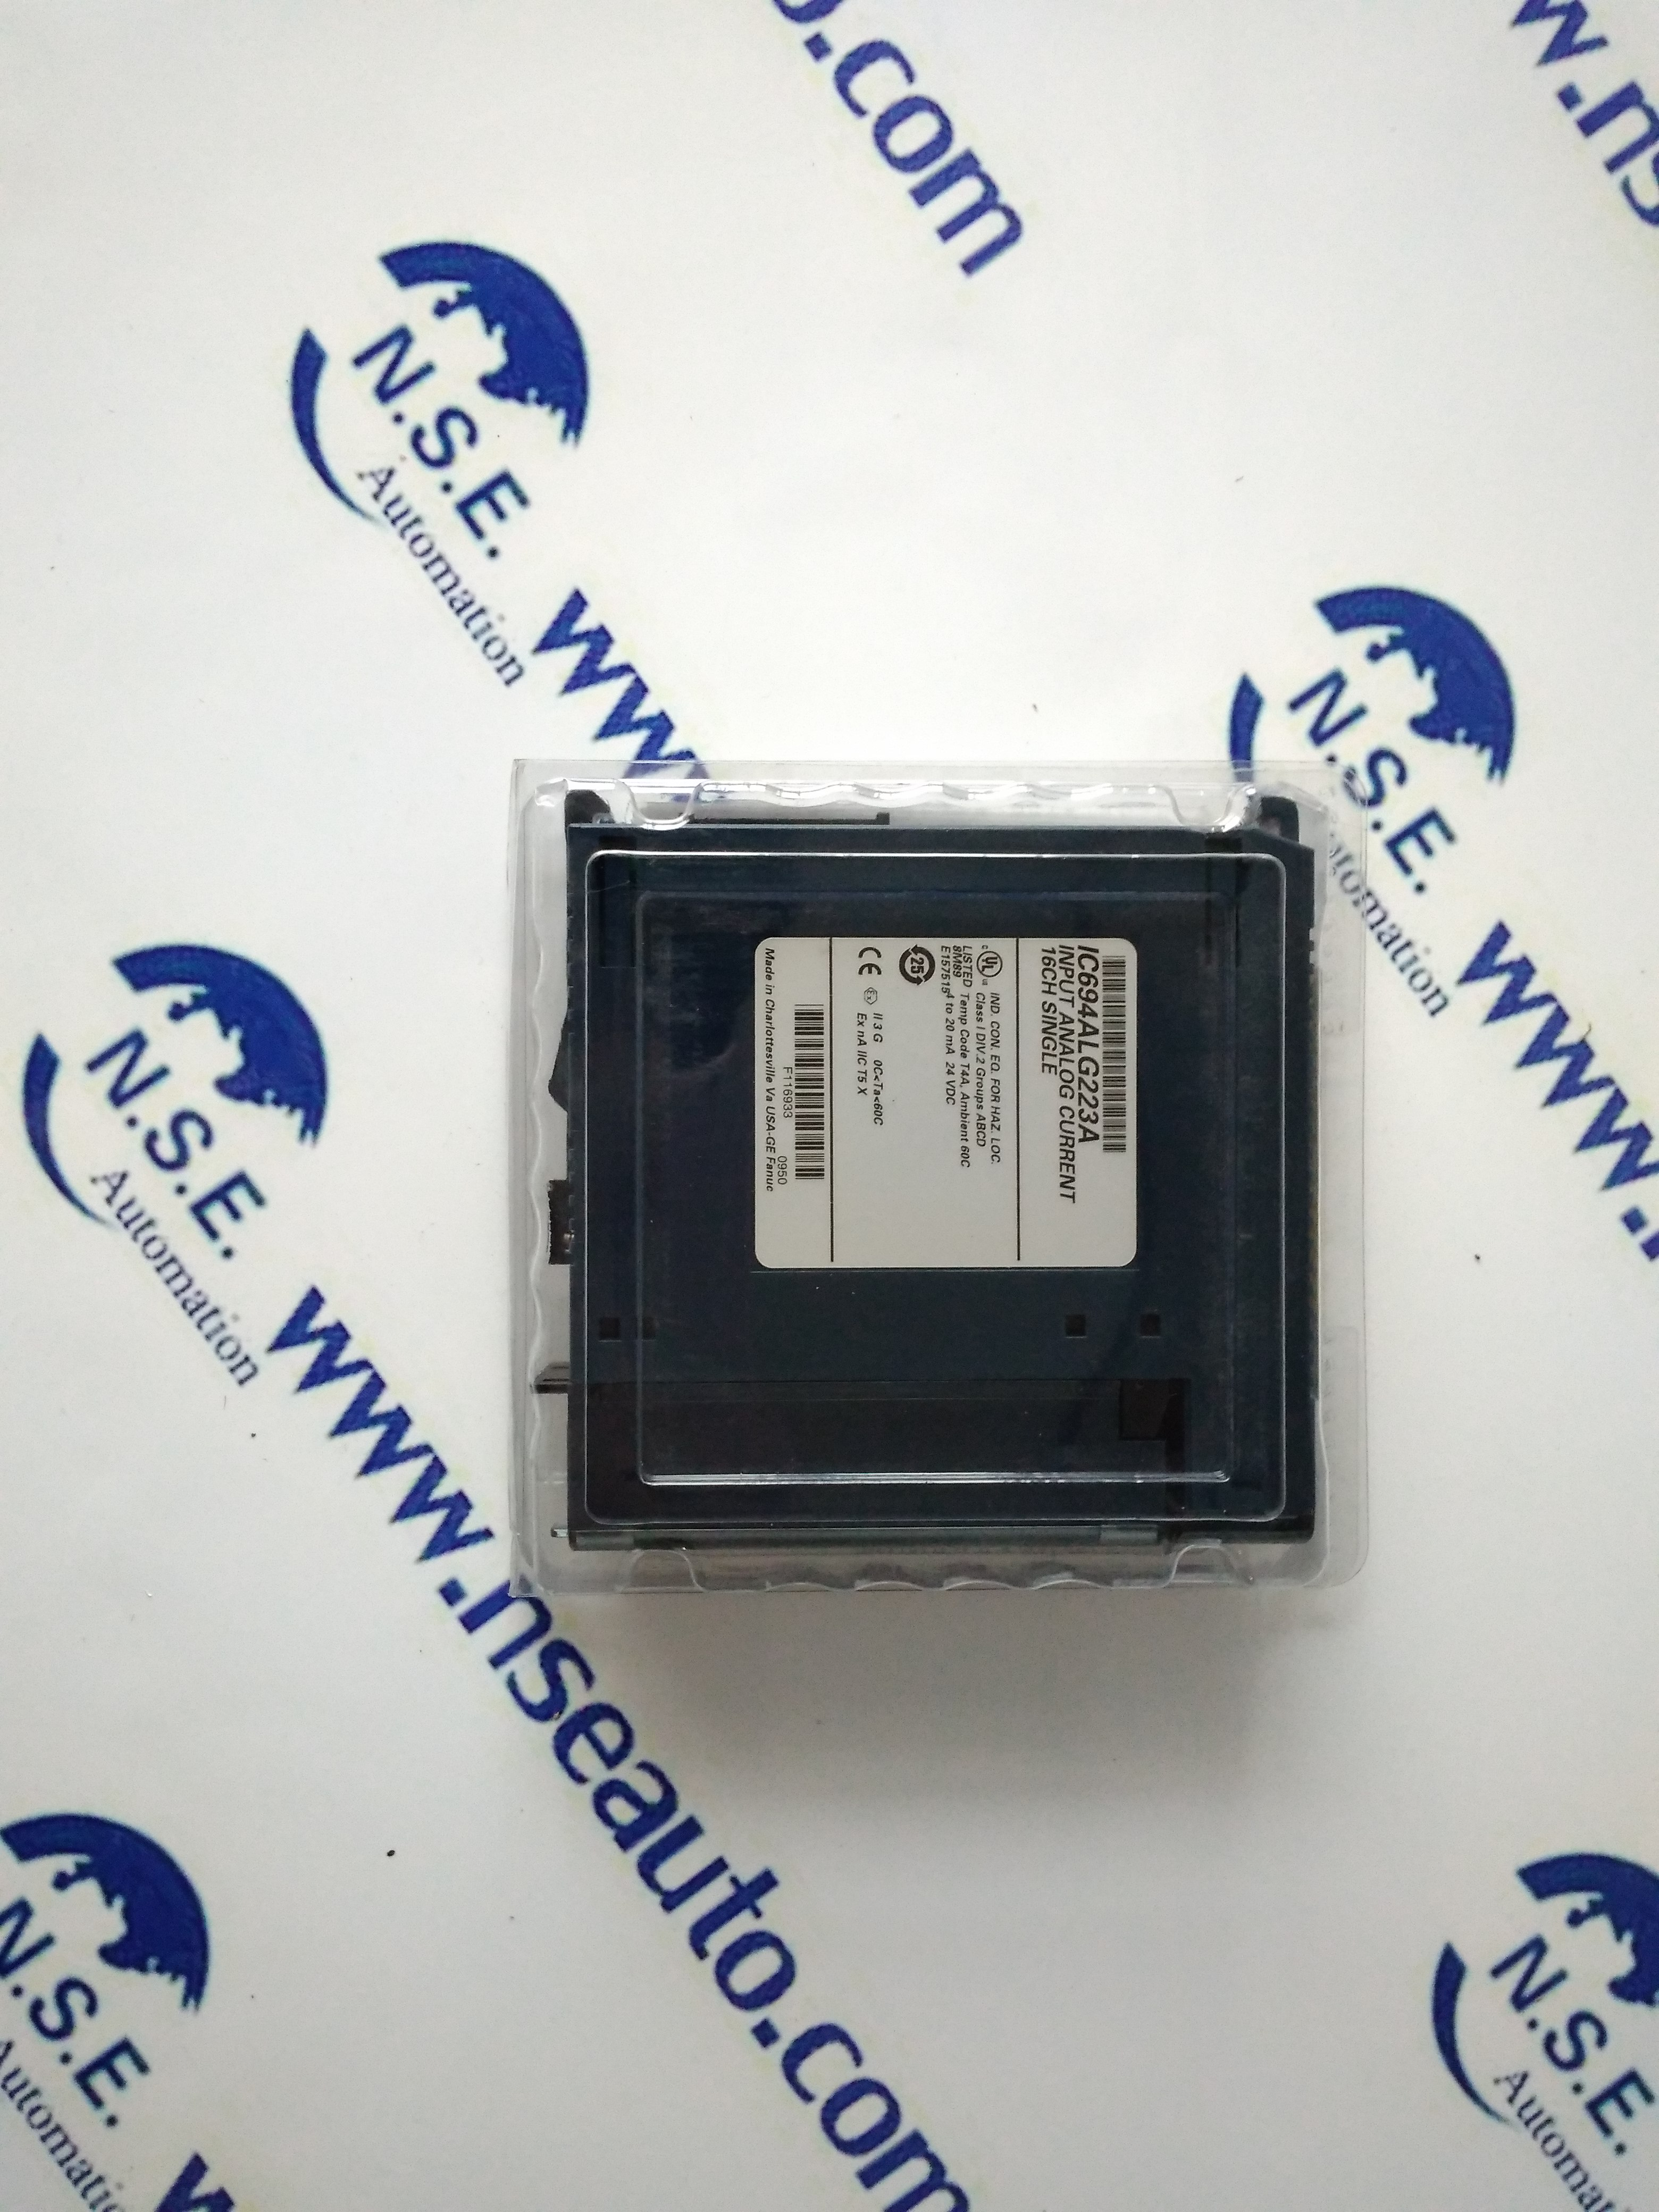 GE IS220PVIBH1A IN STOCK